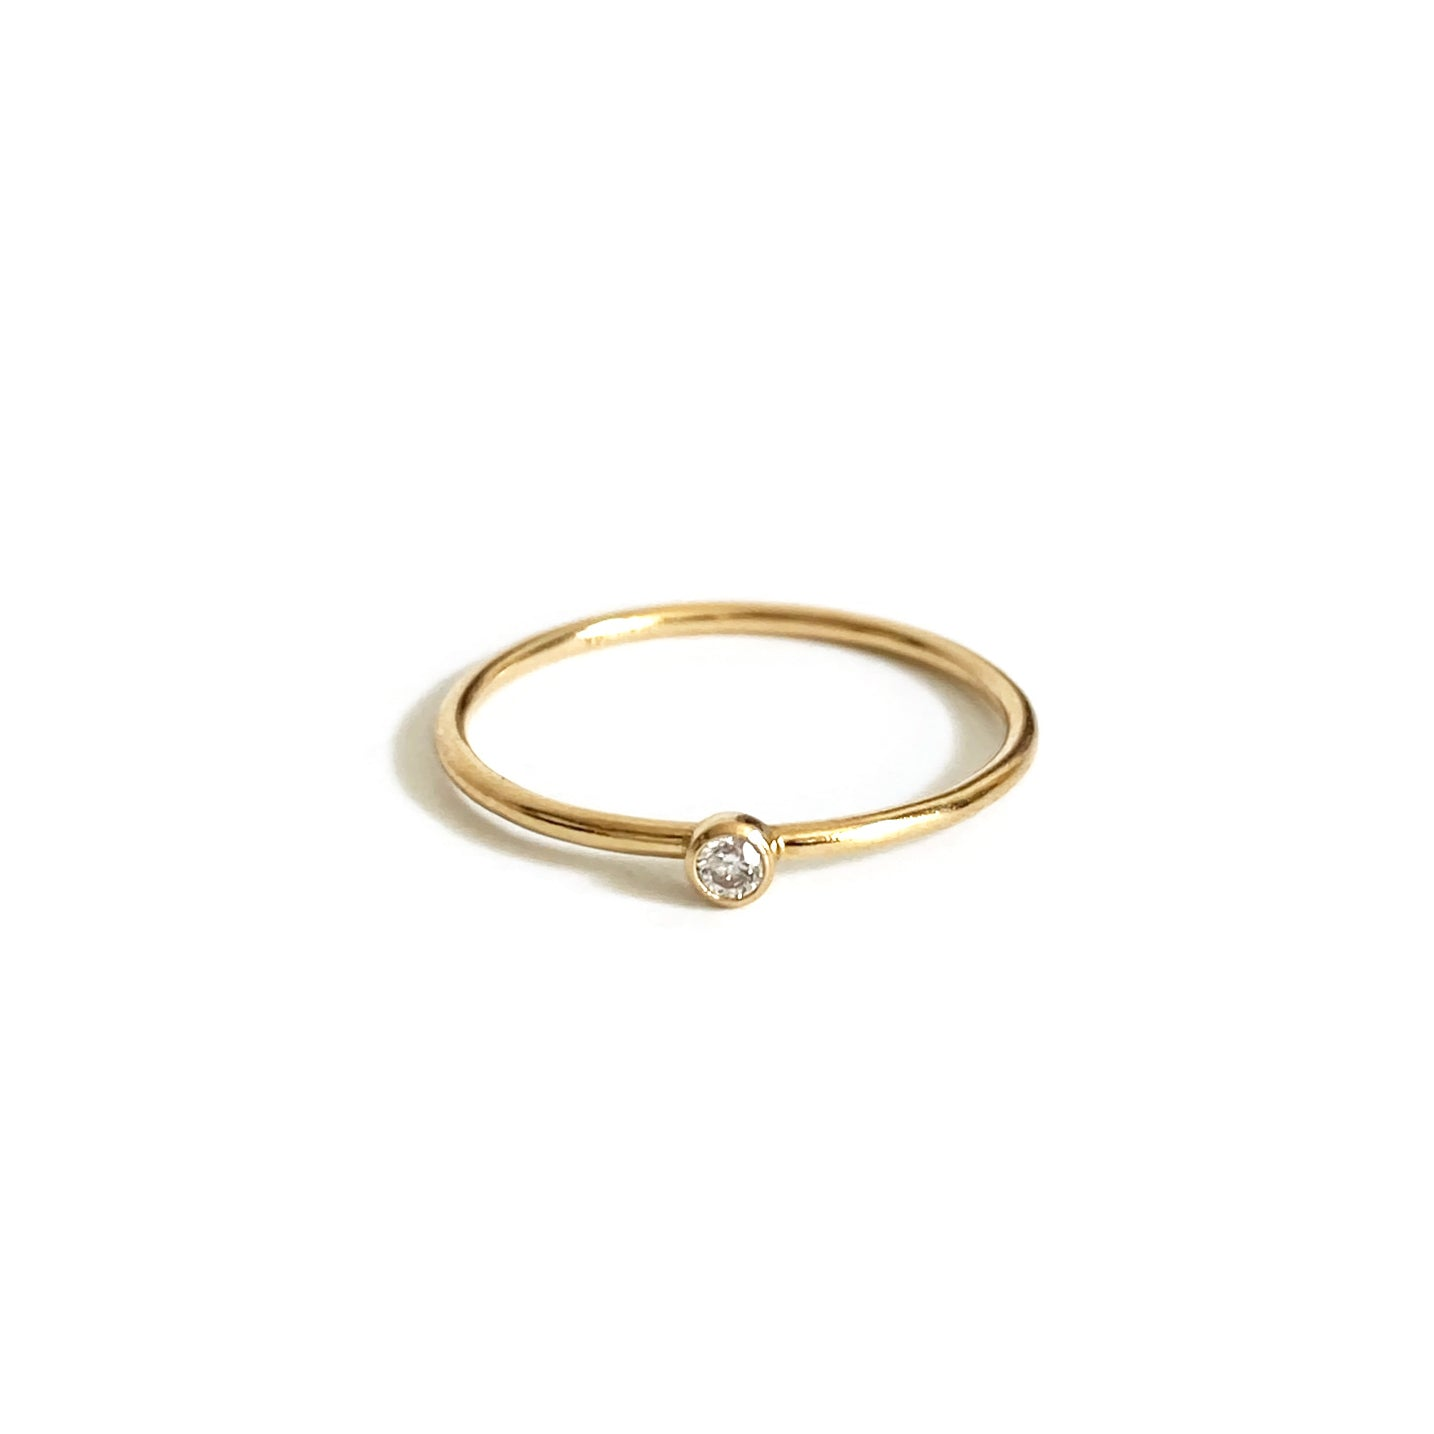 This dainty gold filled ring is a super cute ring.